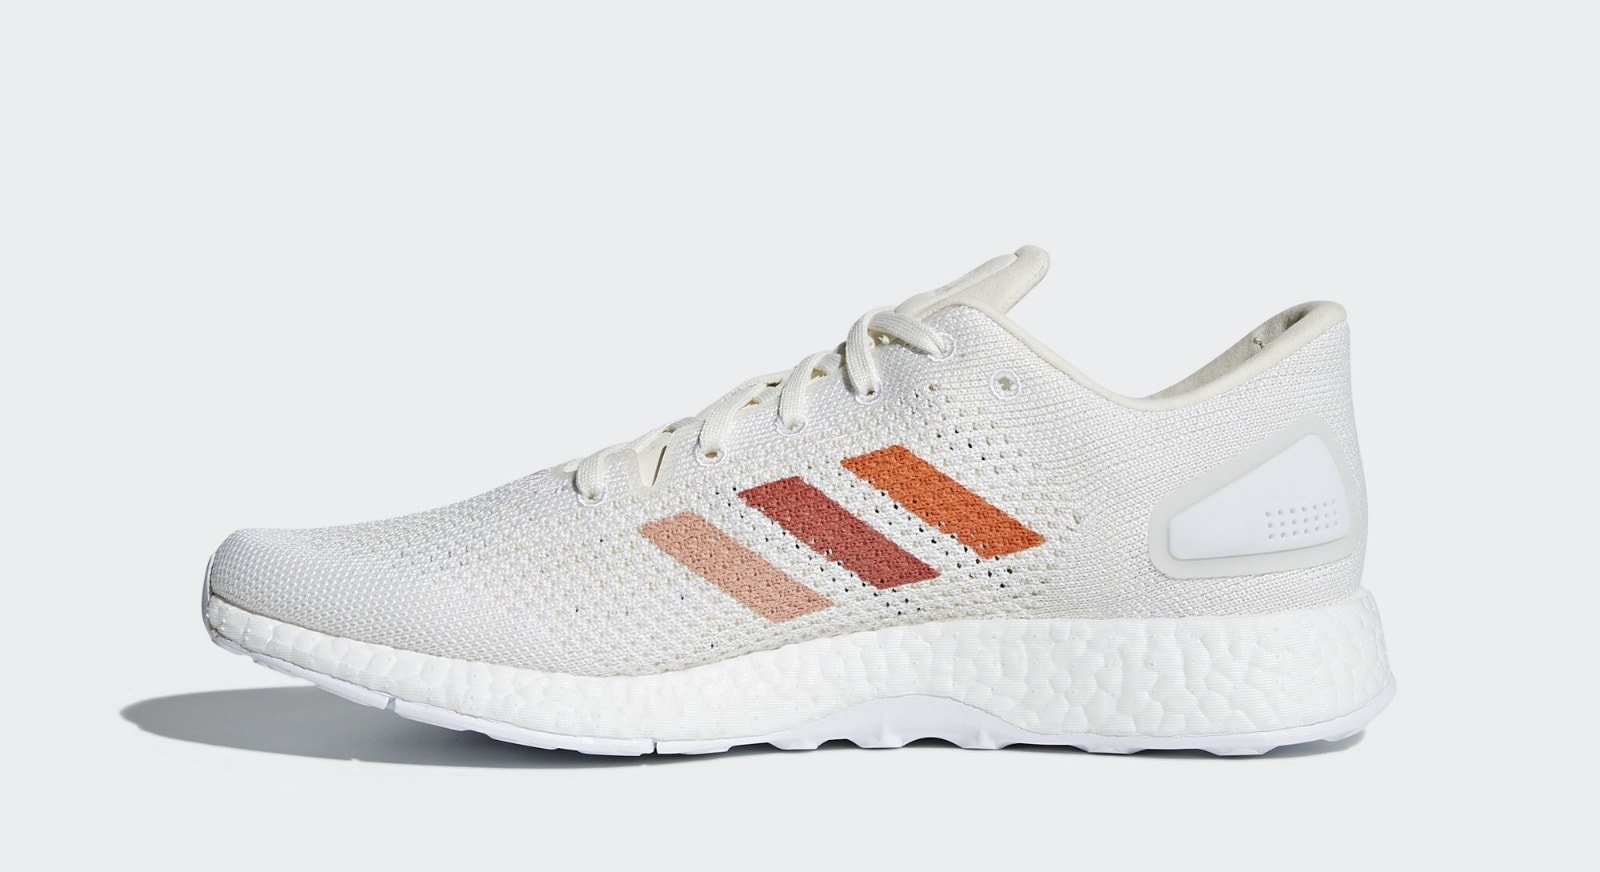 """1f2a3c763ee6 Check out the official images of the adidas PureBoost DPR """"Pride"""" below"""